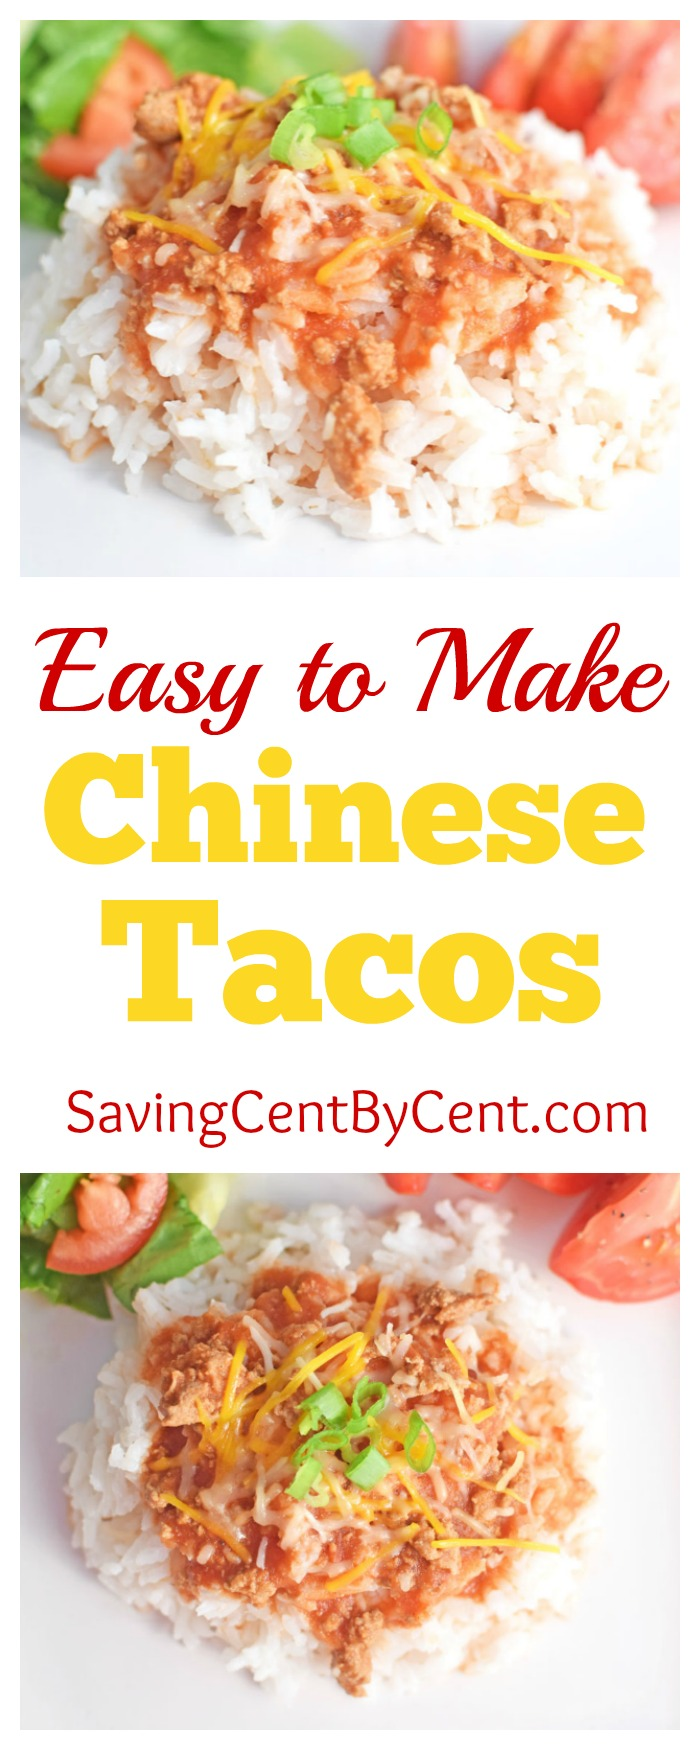 Chinese Tacos